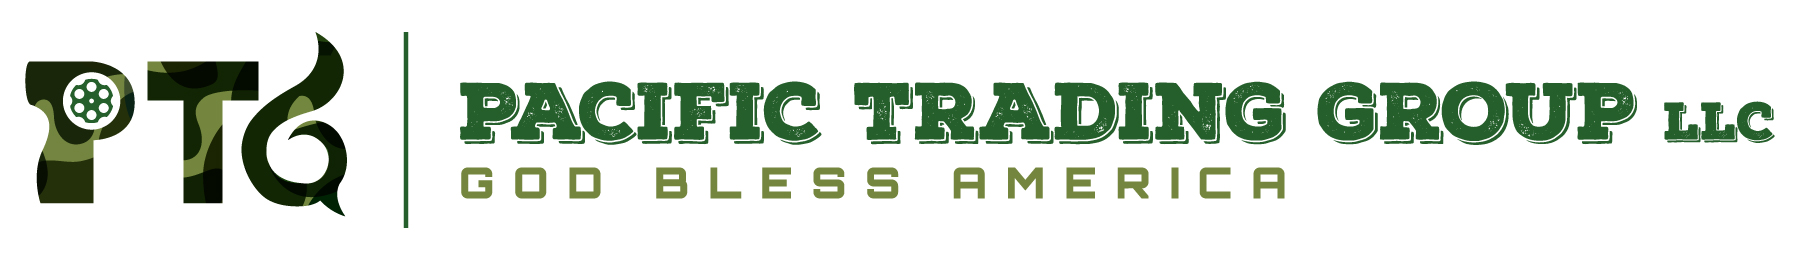 _PACIFICTRADINGGROUP Logo _Final